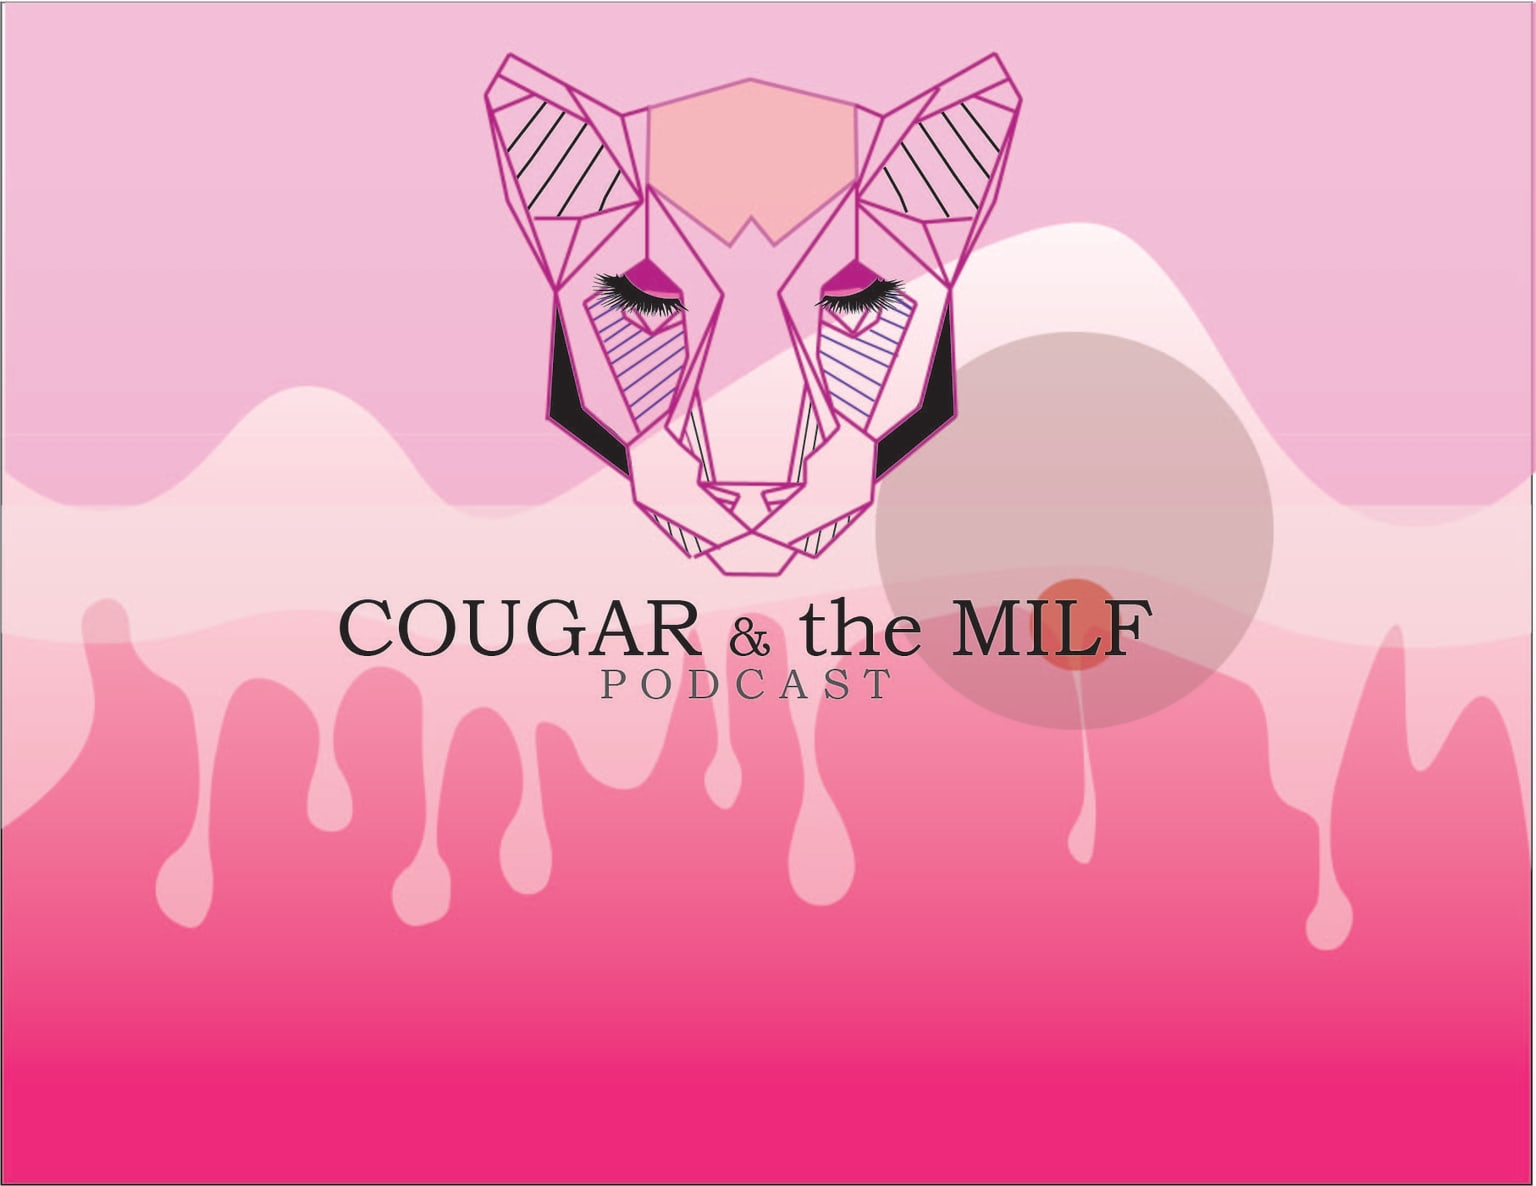 Cougar & the Milf Podcast